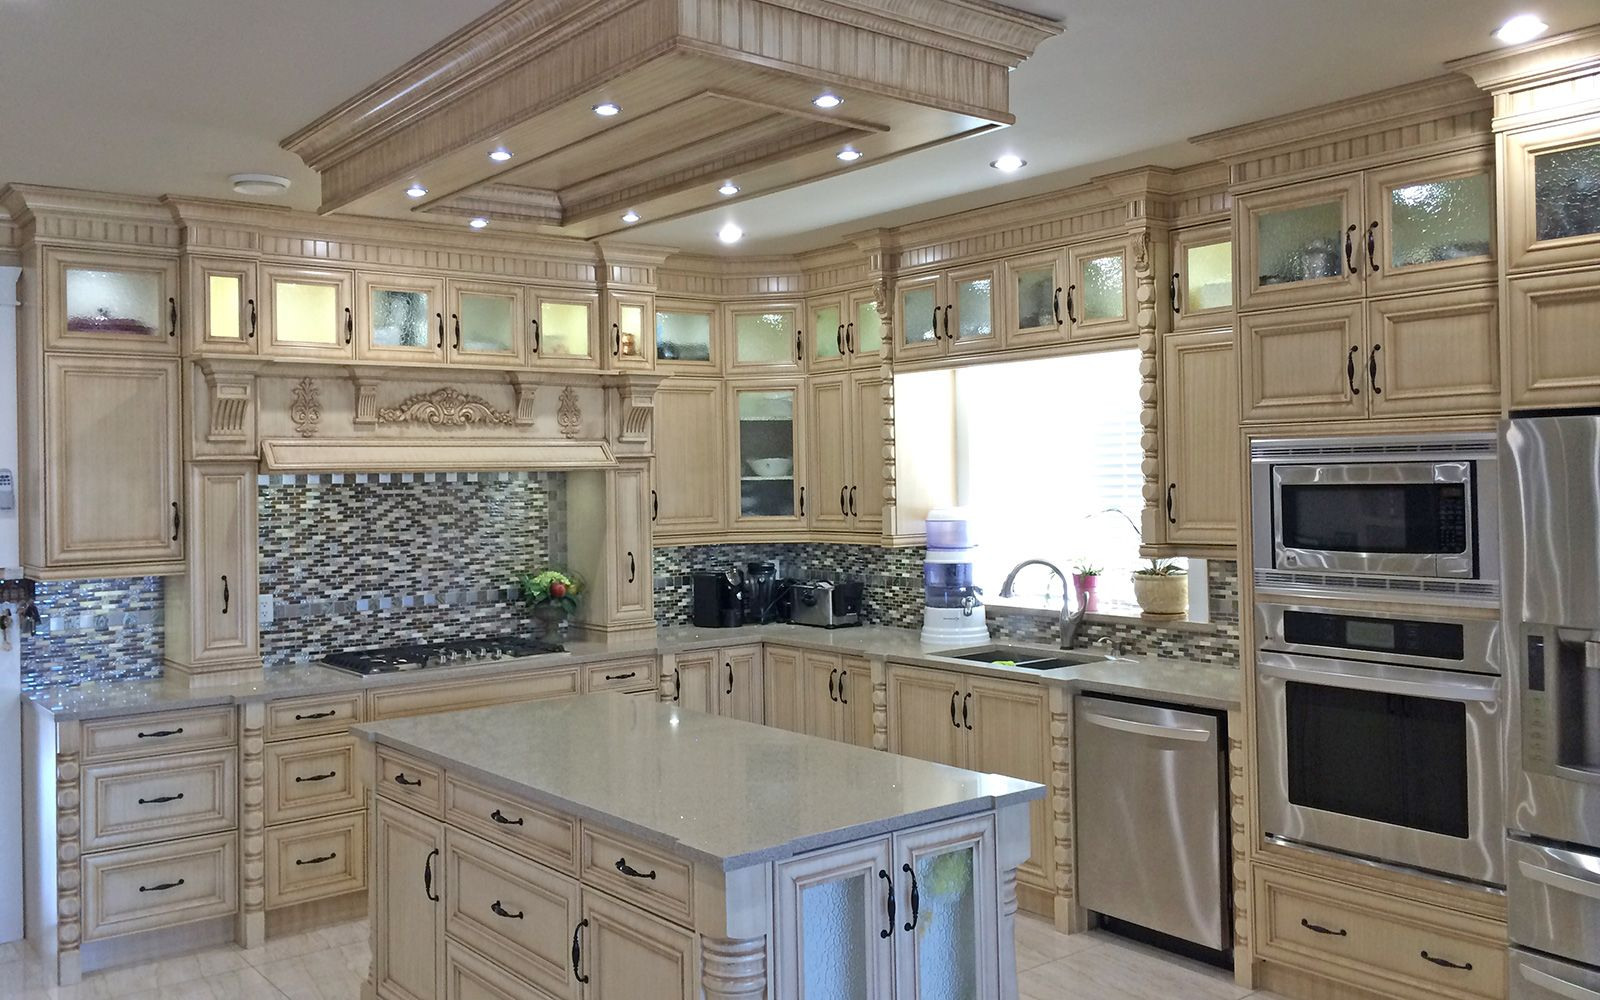 21 Awesome Kitchen Cabinet Storage Ideas With Images